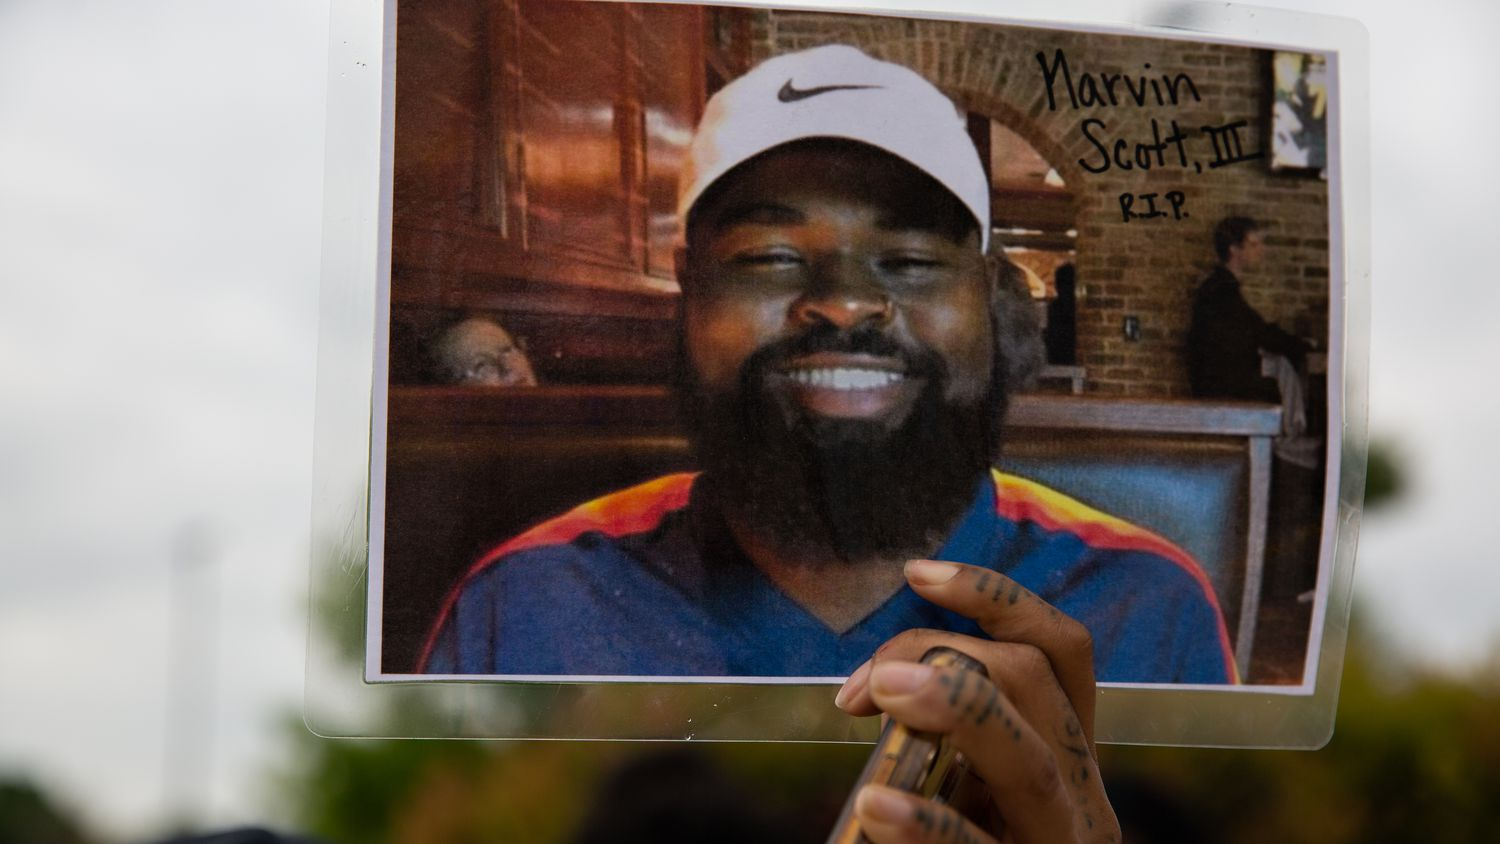 Renee White held up a photo of Marvin Scott III after a news conference on April 28, 2021, while demanding that police officers at the Collin County Courthouse arrest the officers involved in Scott's in-custody death.